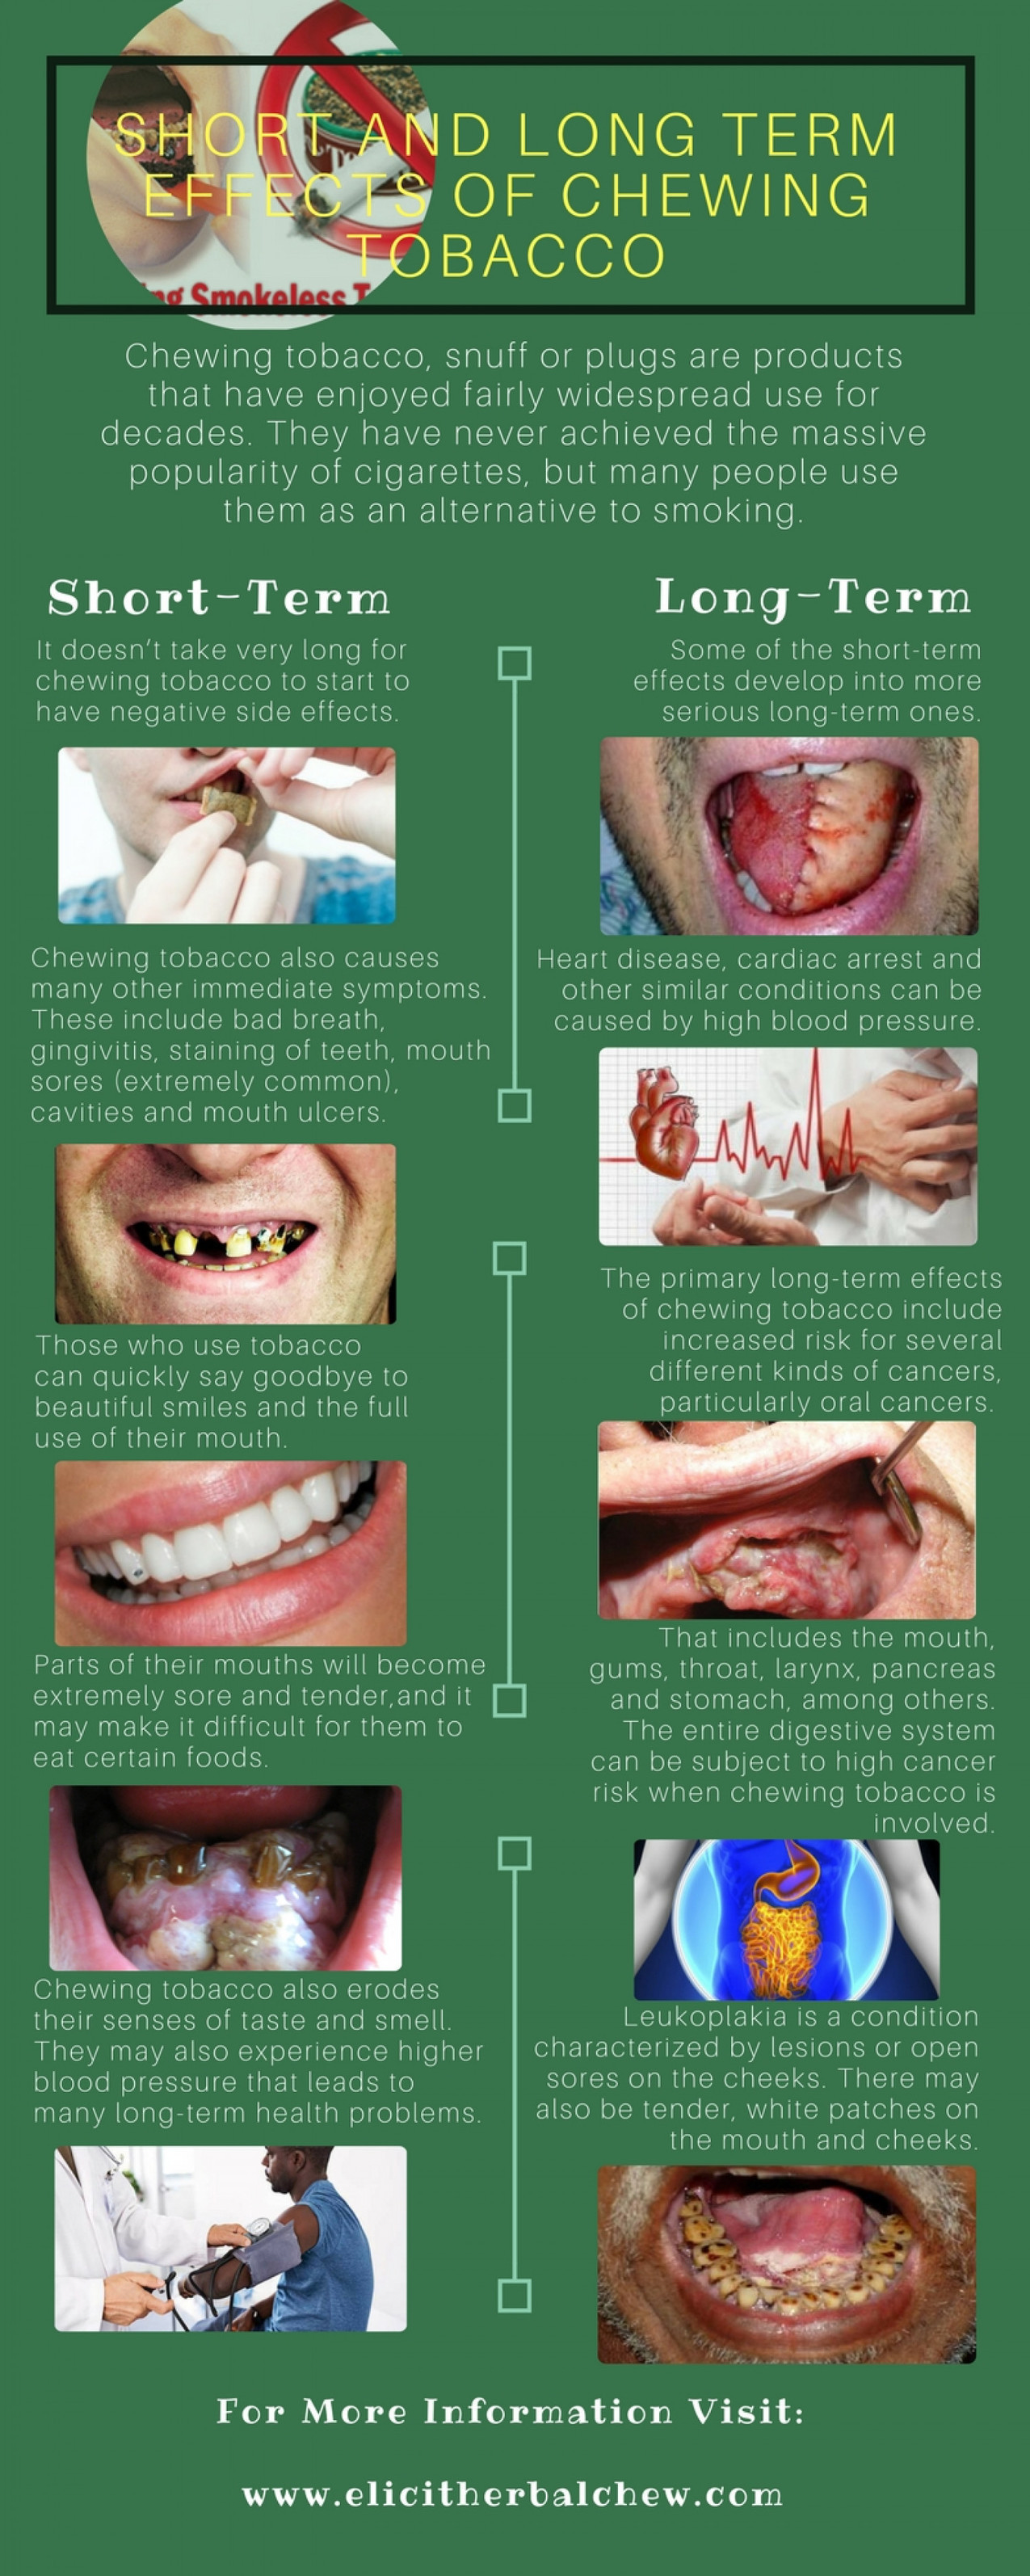 Short and Long Term Effects of Chewing Tabacco